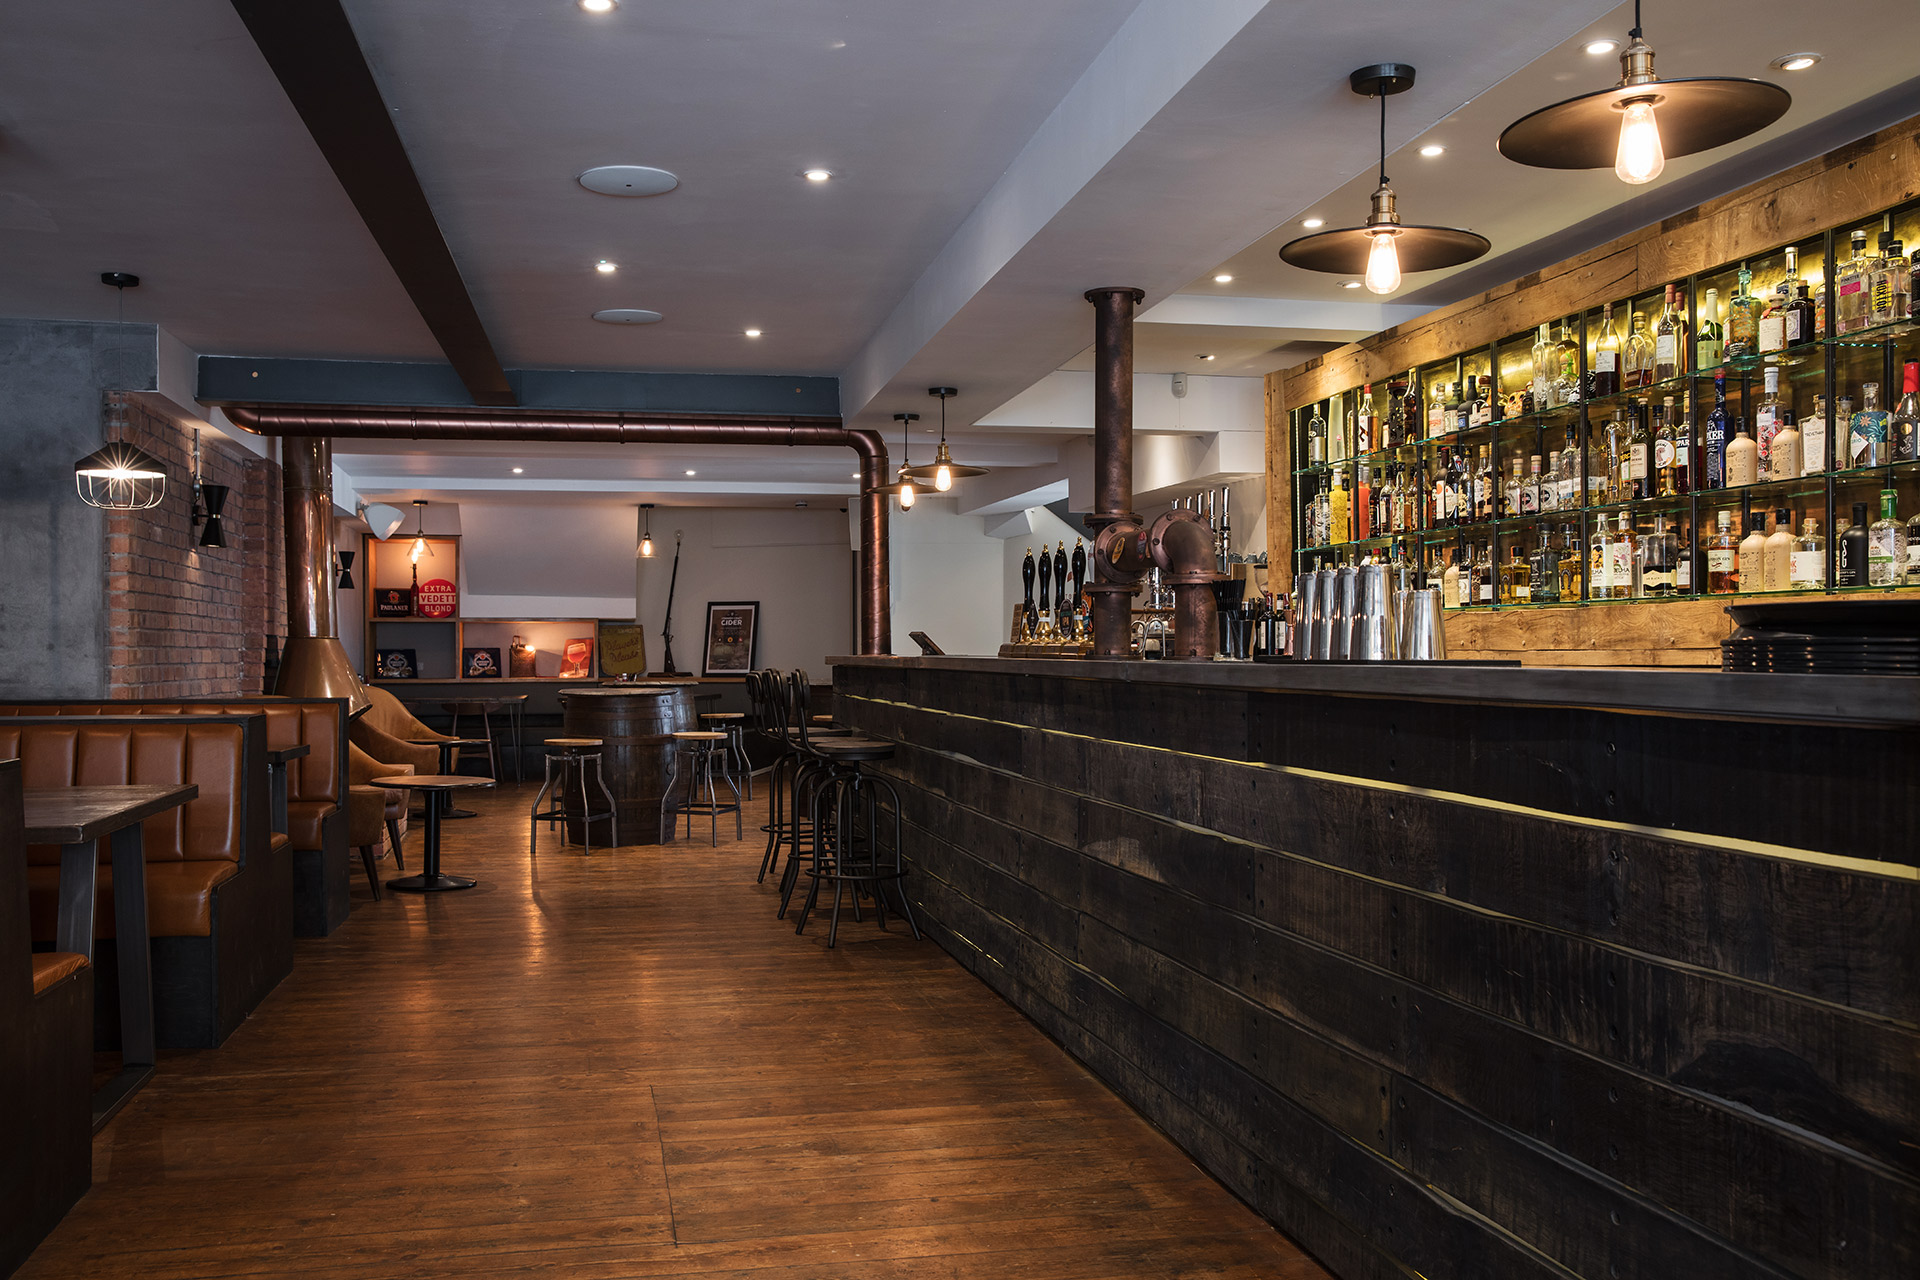 Banquette leather seating with blacked stained bar front with Zink Bar Top and brass beer font